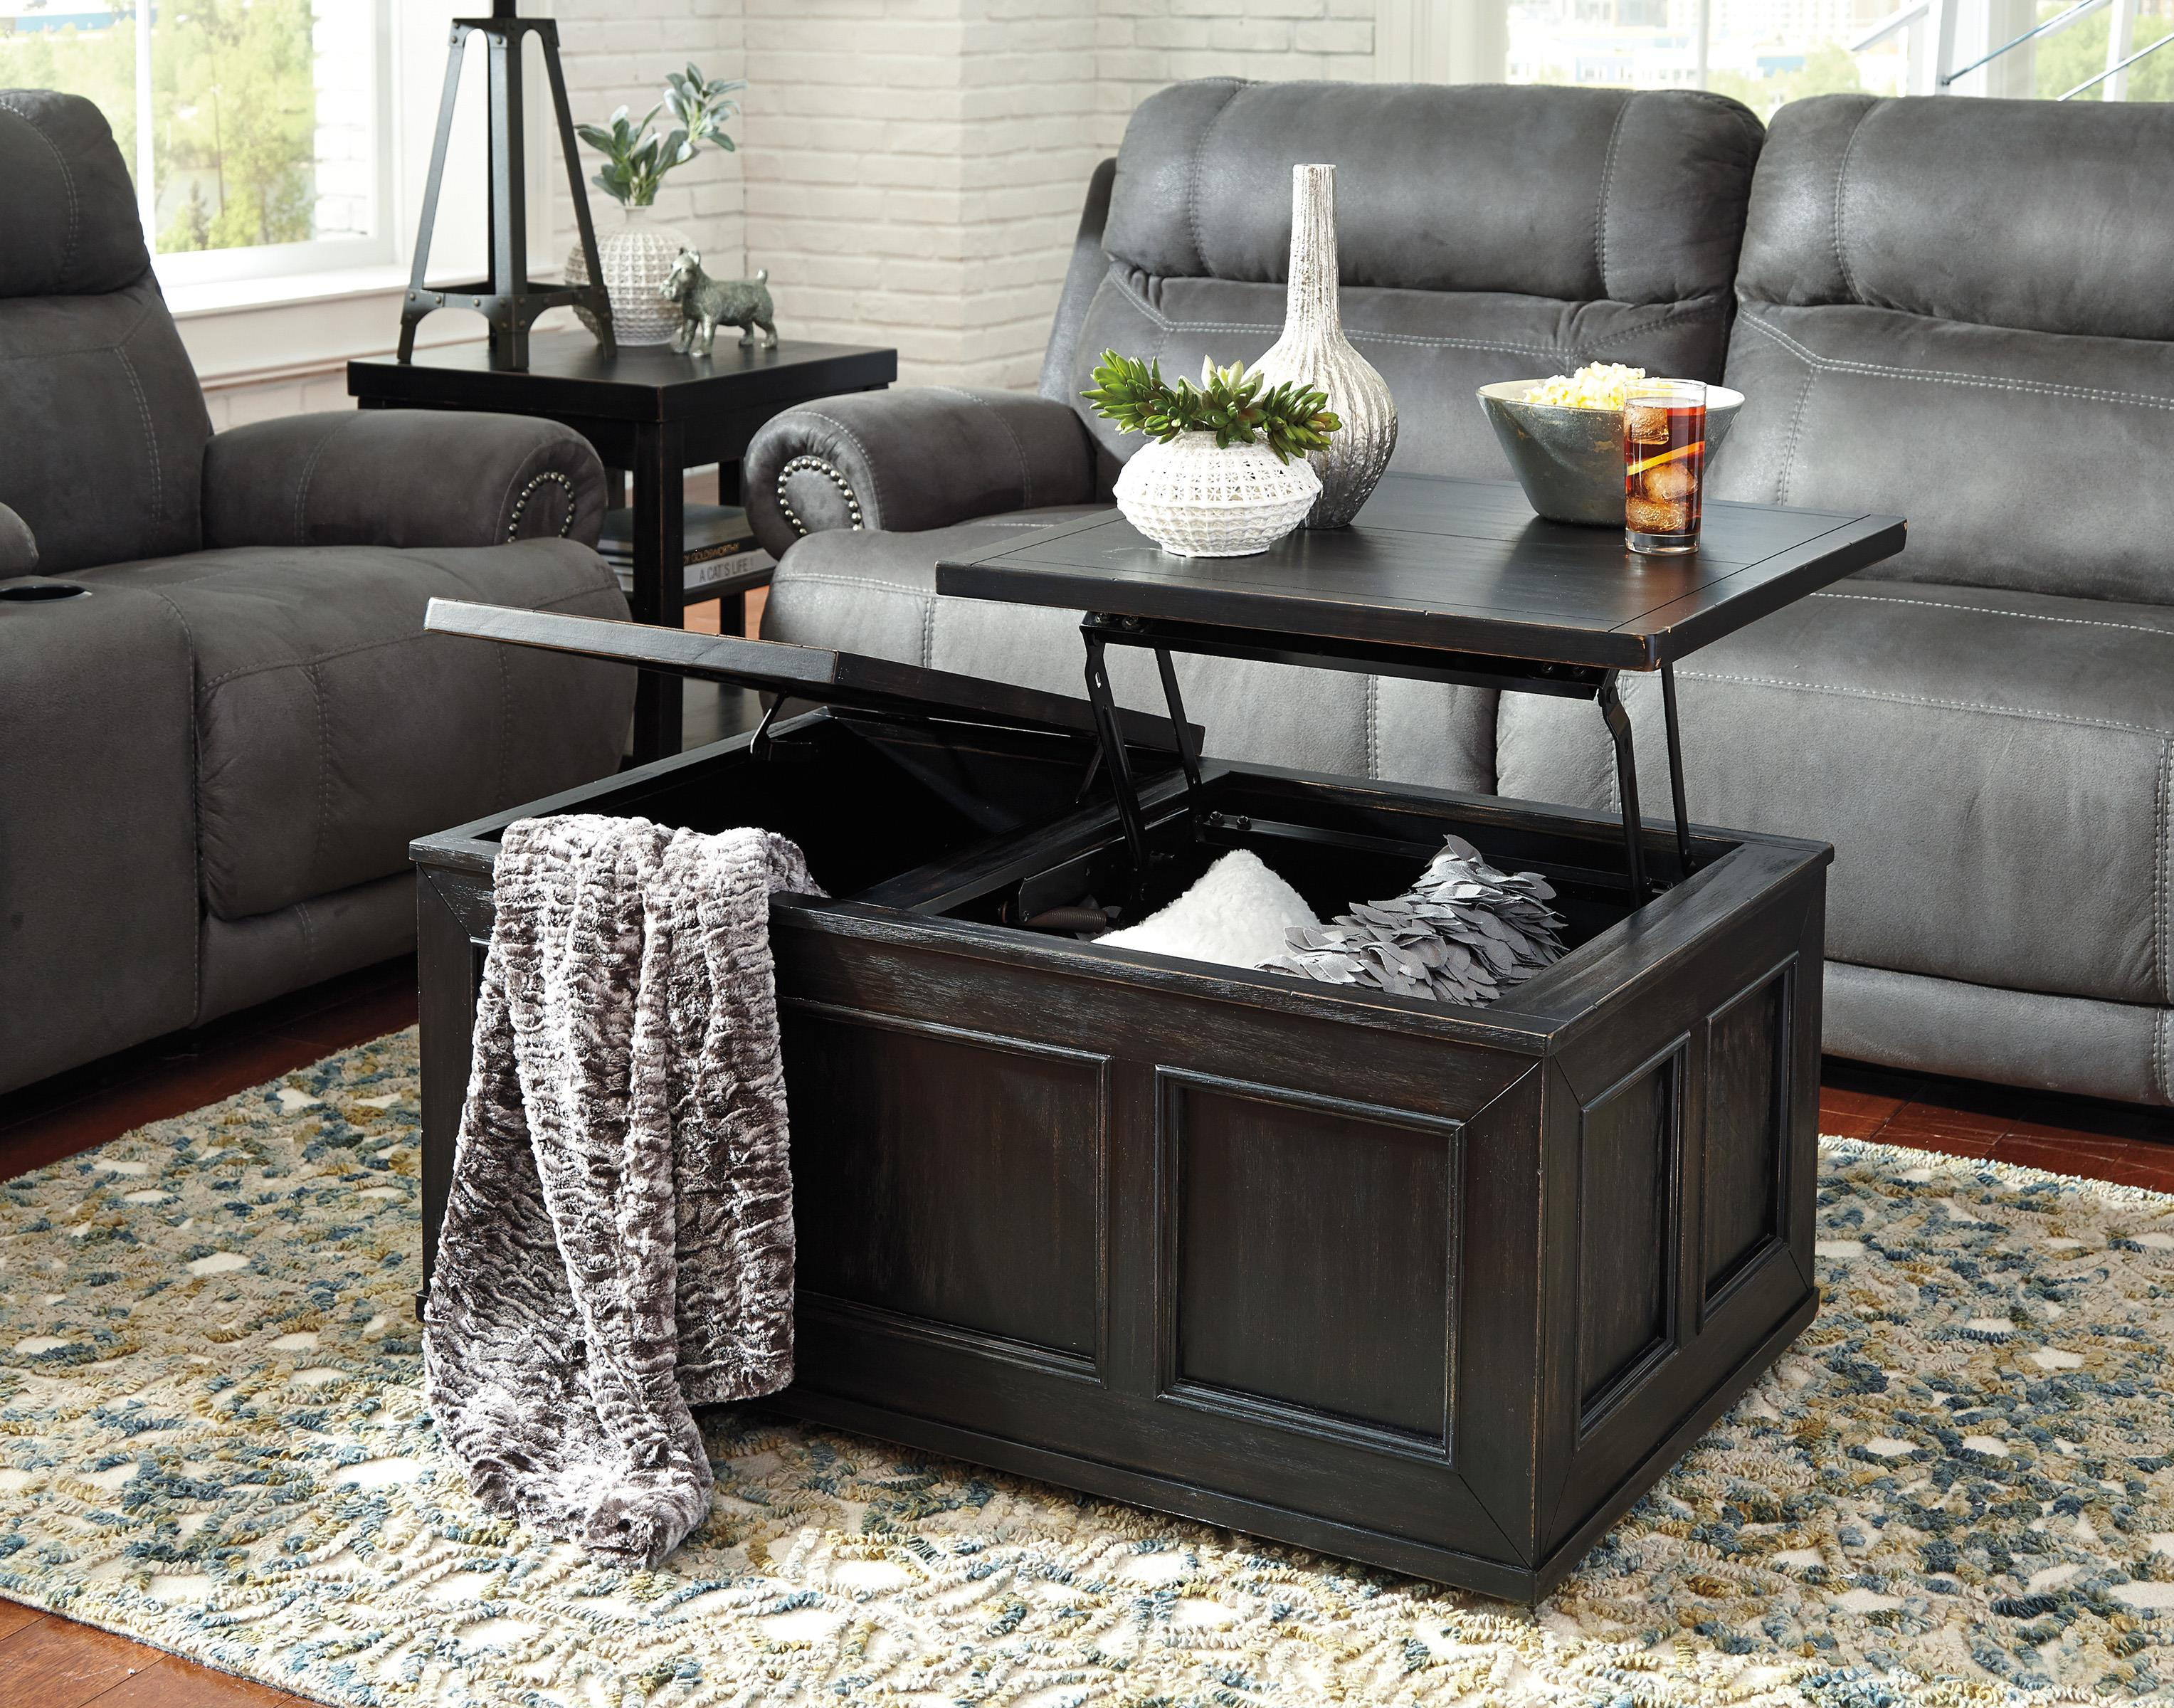 Rustic Distressed Black Trunk Style Lift Top Cocktail Table W/ Casters